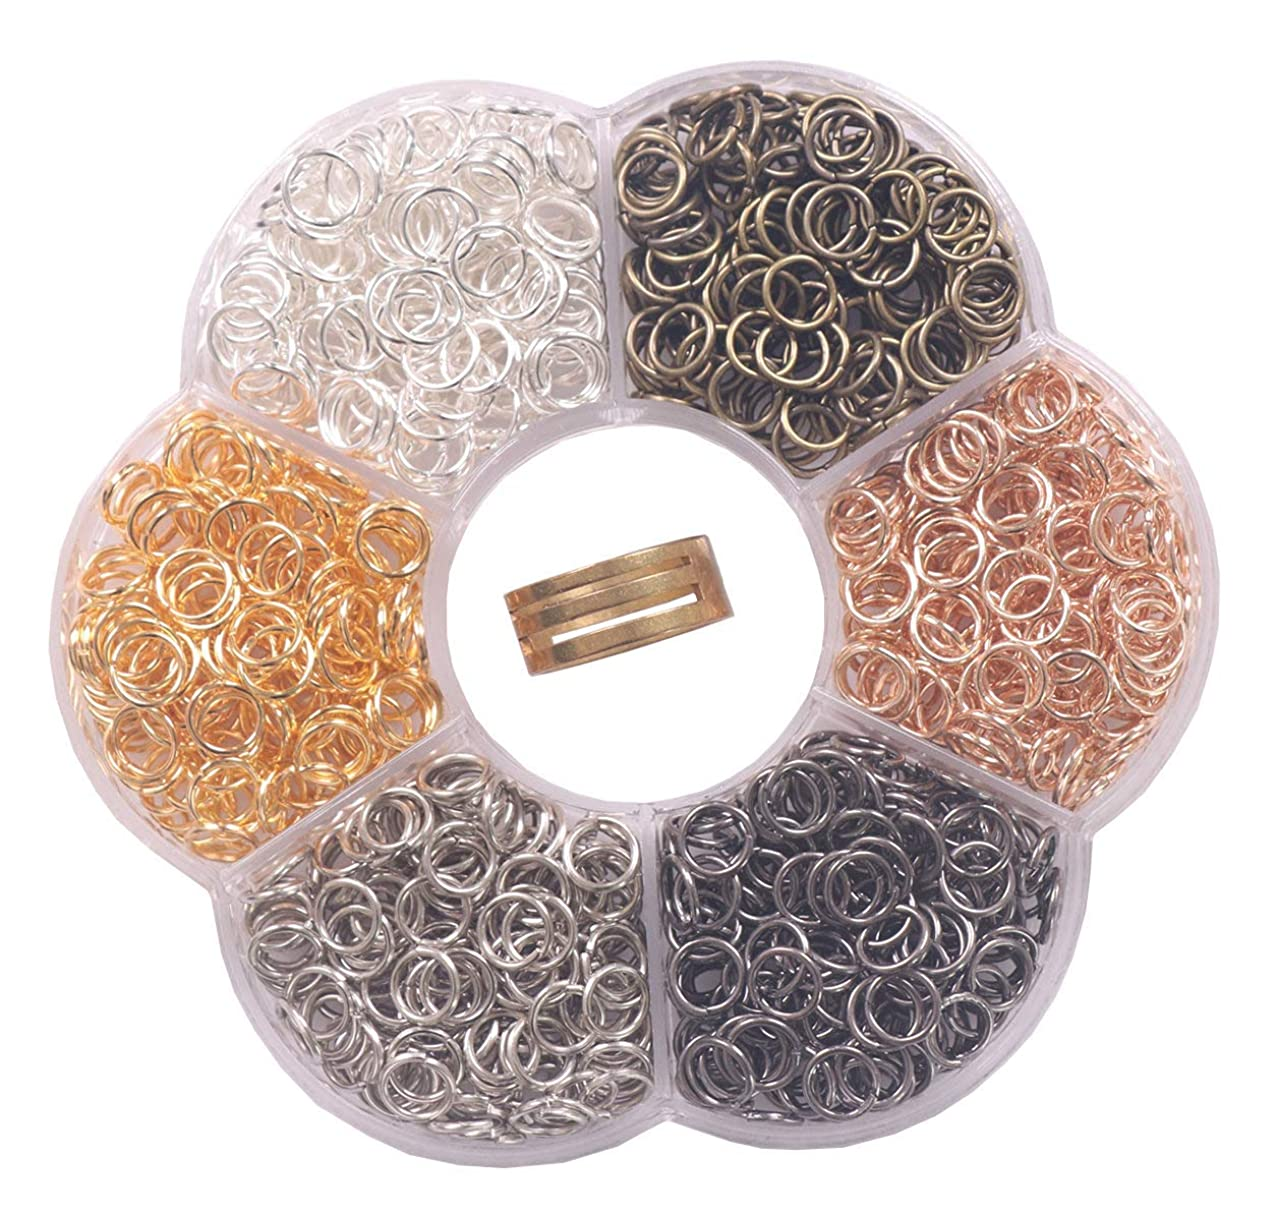 YAKA1800Pcs 6mm1Box 6 Colors Open Jump Ring,Ring Jewelry Keychain for Jewelry Making Accessories,1Pcc Jump Ring Open/Close Tool and 1Pcs Clear Box (0.23